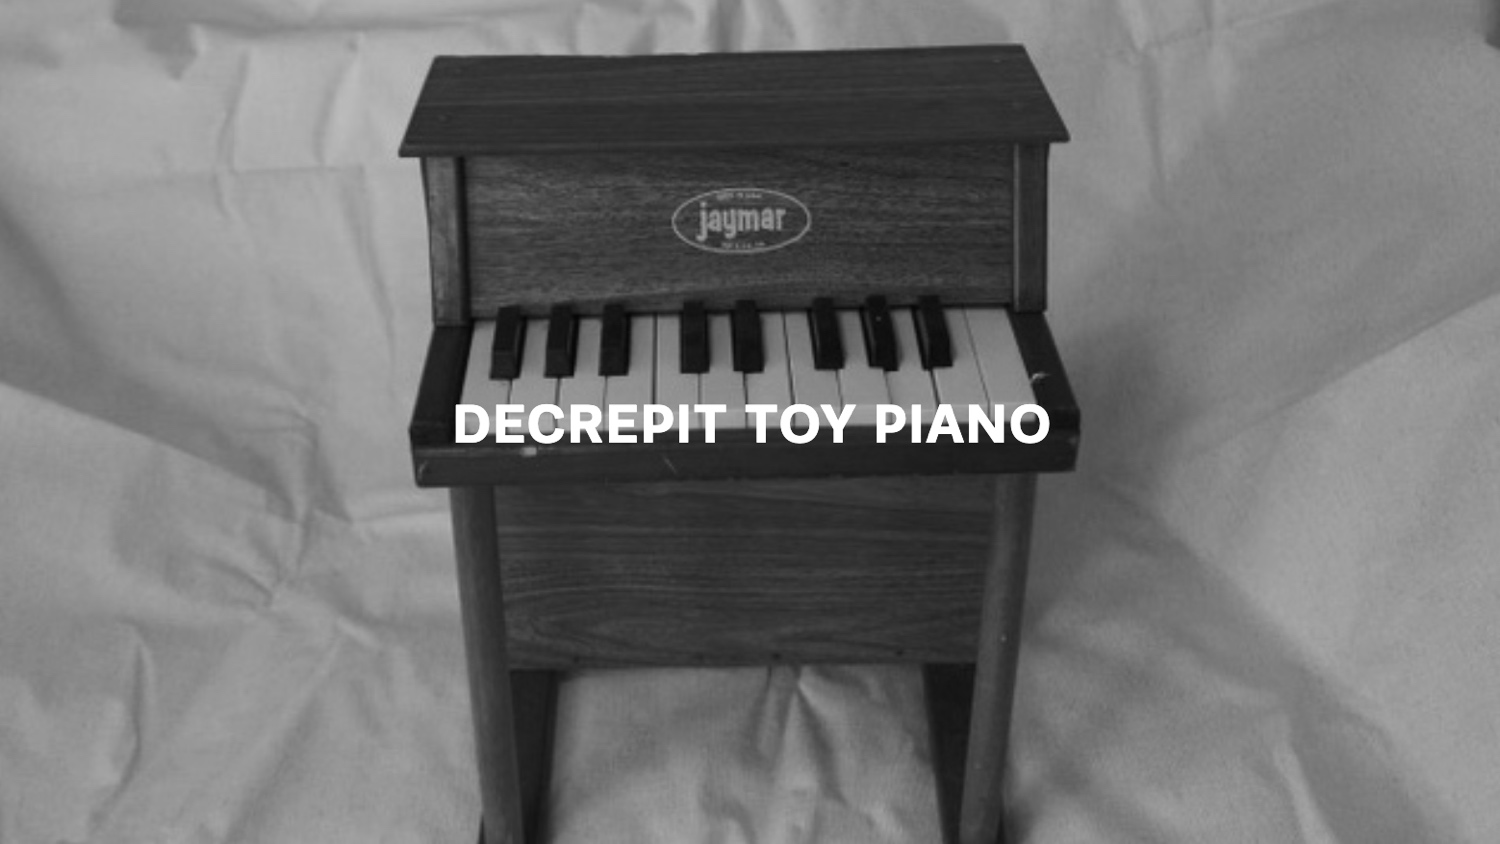 Decrepit Toy Piano Text.jpg